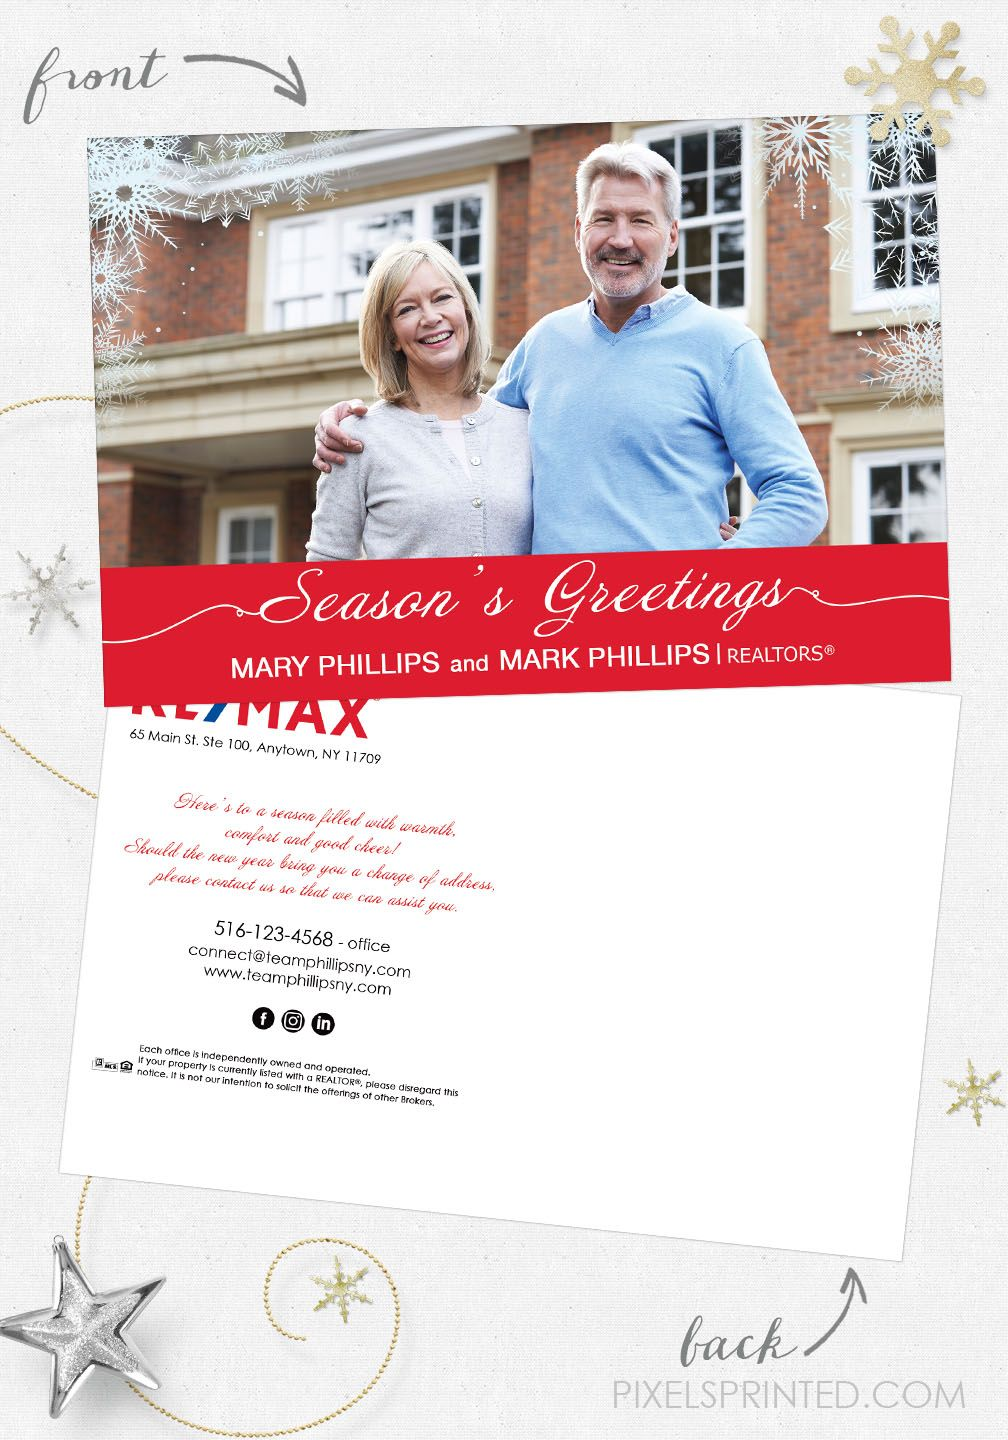 Remax Christmas Recipe Postcards Remax Holiday Recipe Postcards